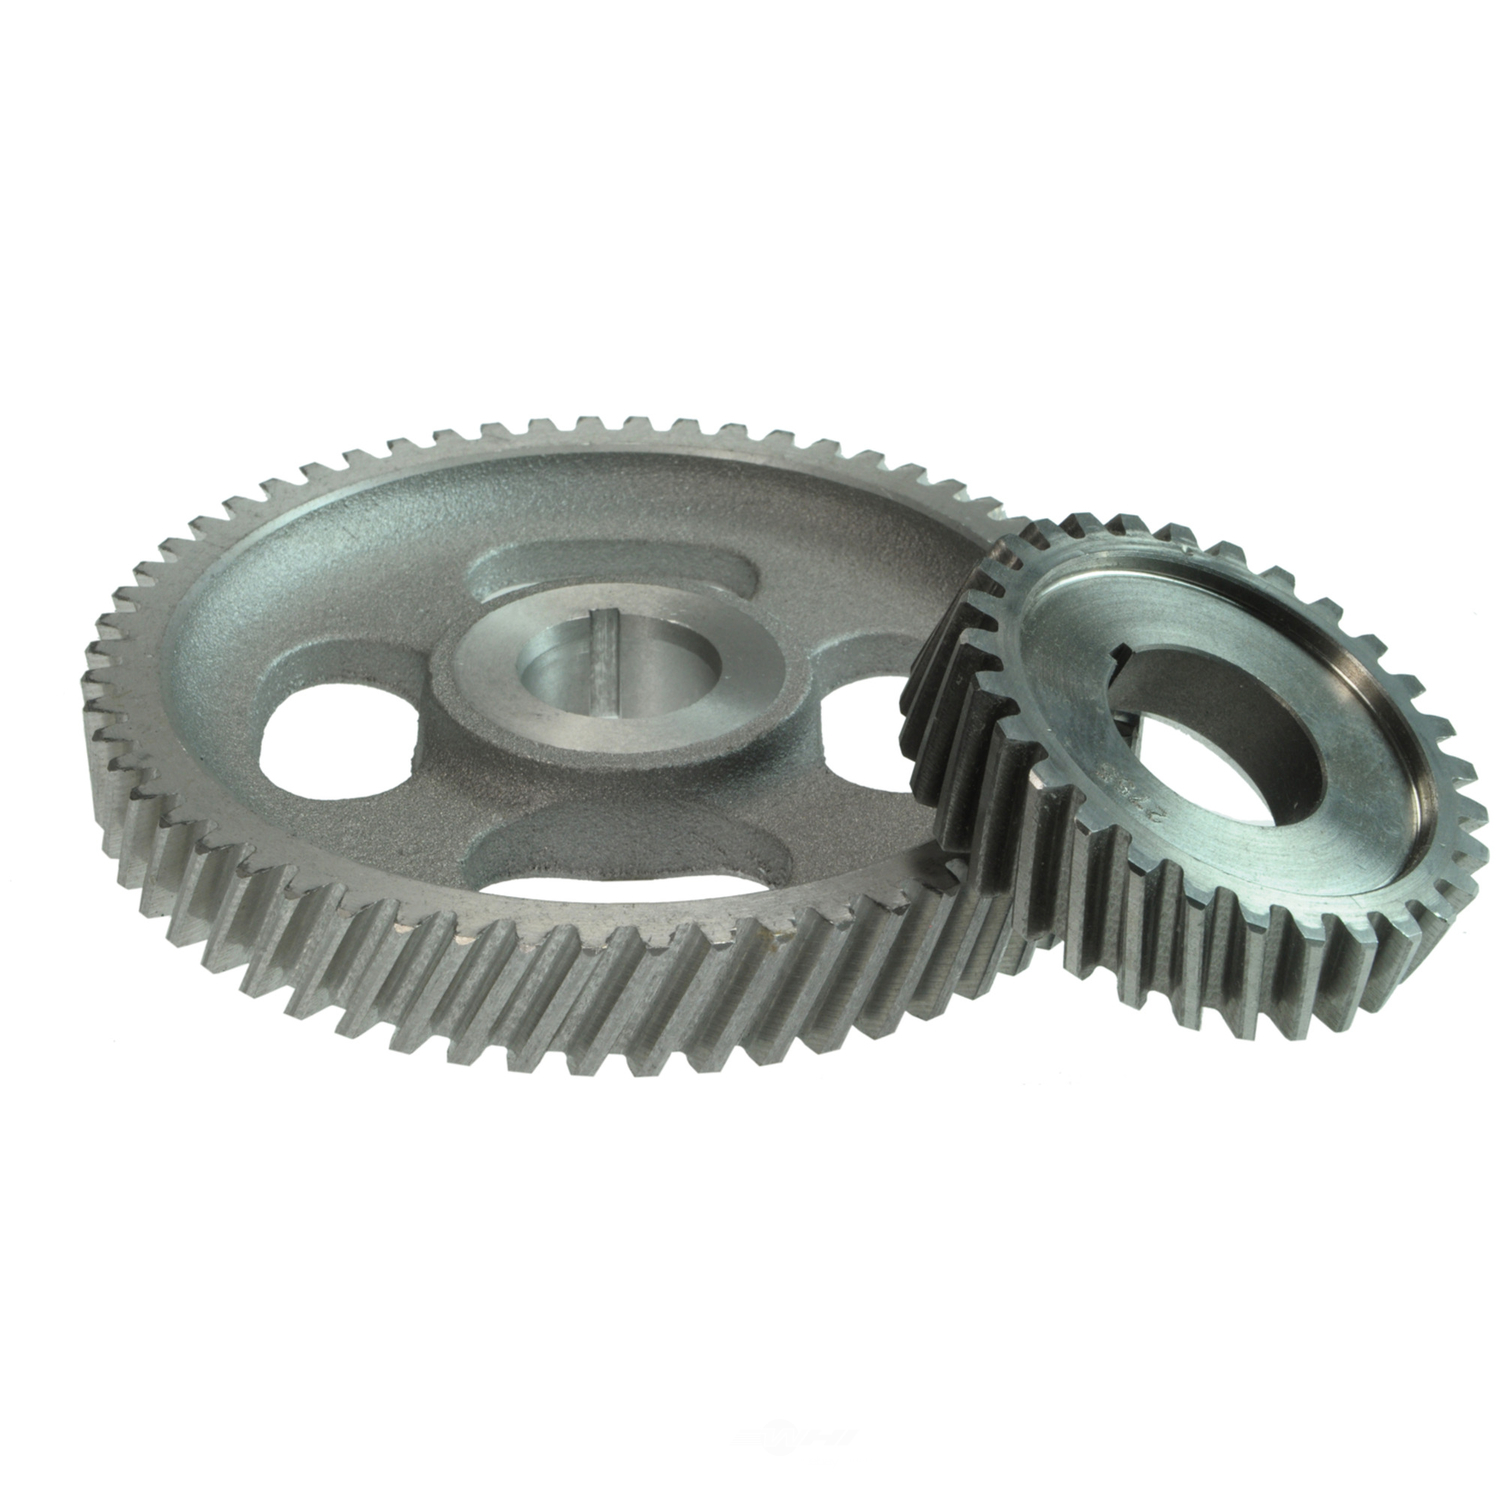 SEALED POWER - Engine Timing Gear Set - SEA 221-2750AS